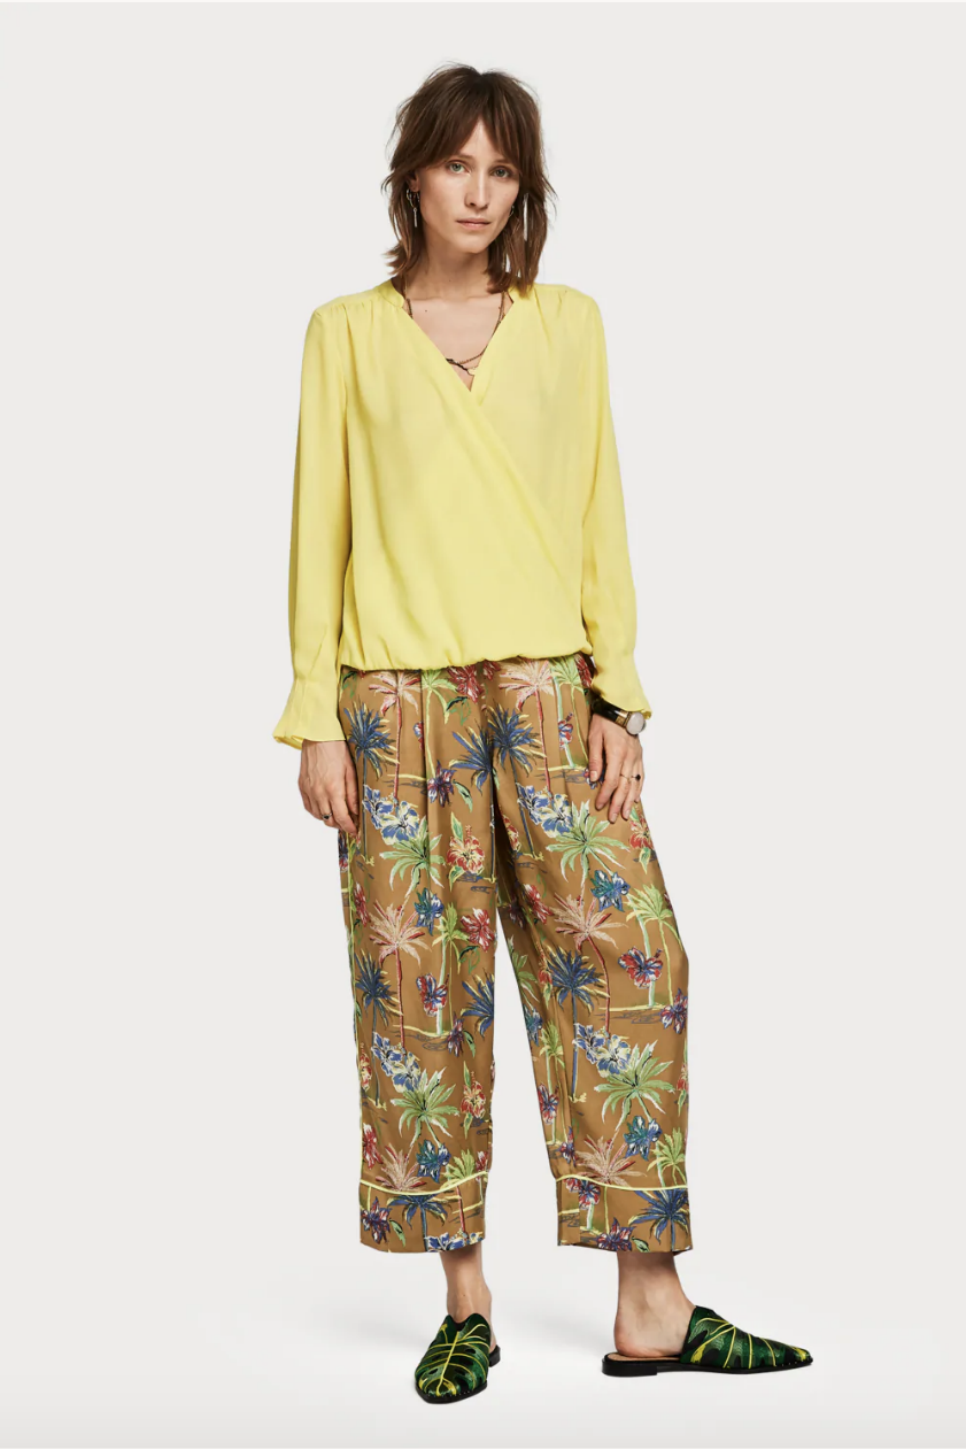 Scotch and Soda - Crossover V Neck Top - Citrus